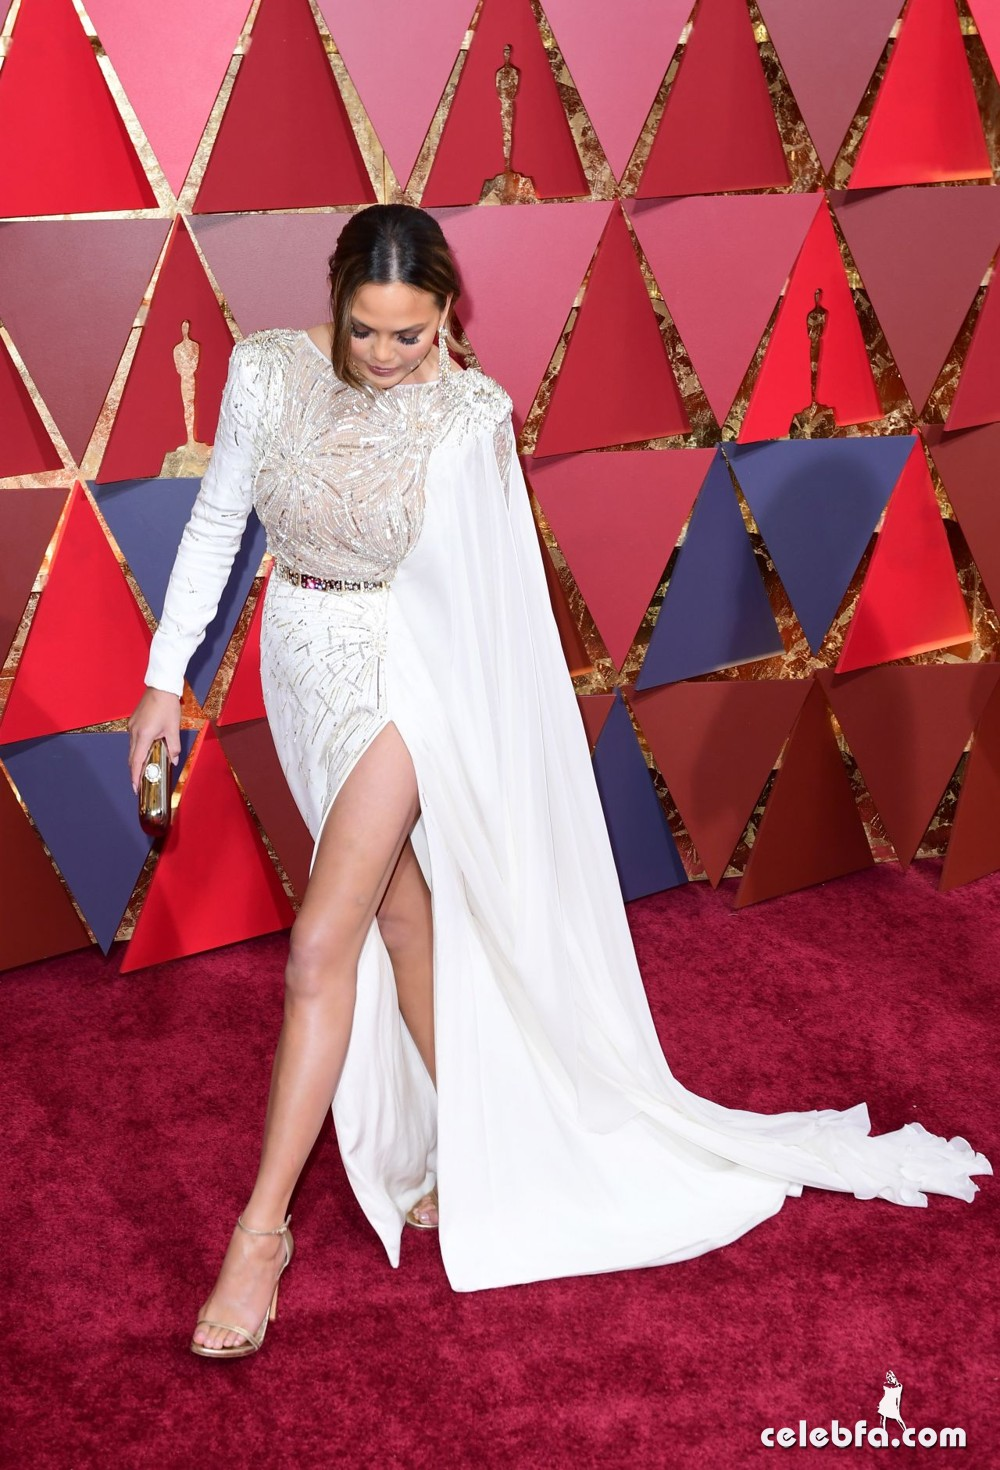 chrissy-teigen-oscars-2017-red-carpet-11